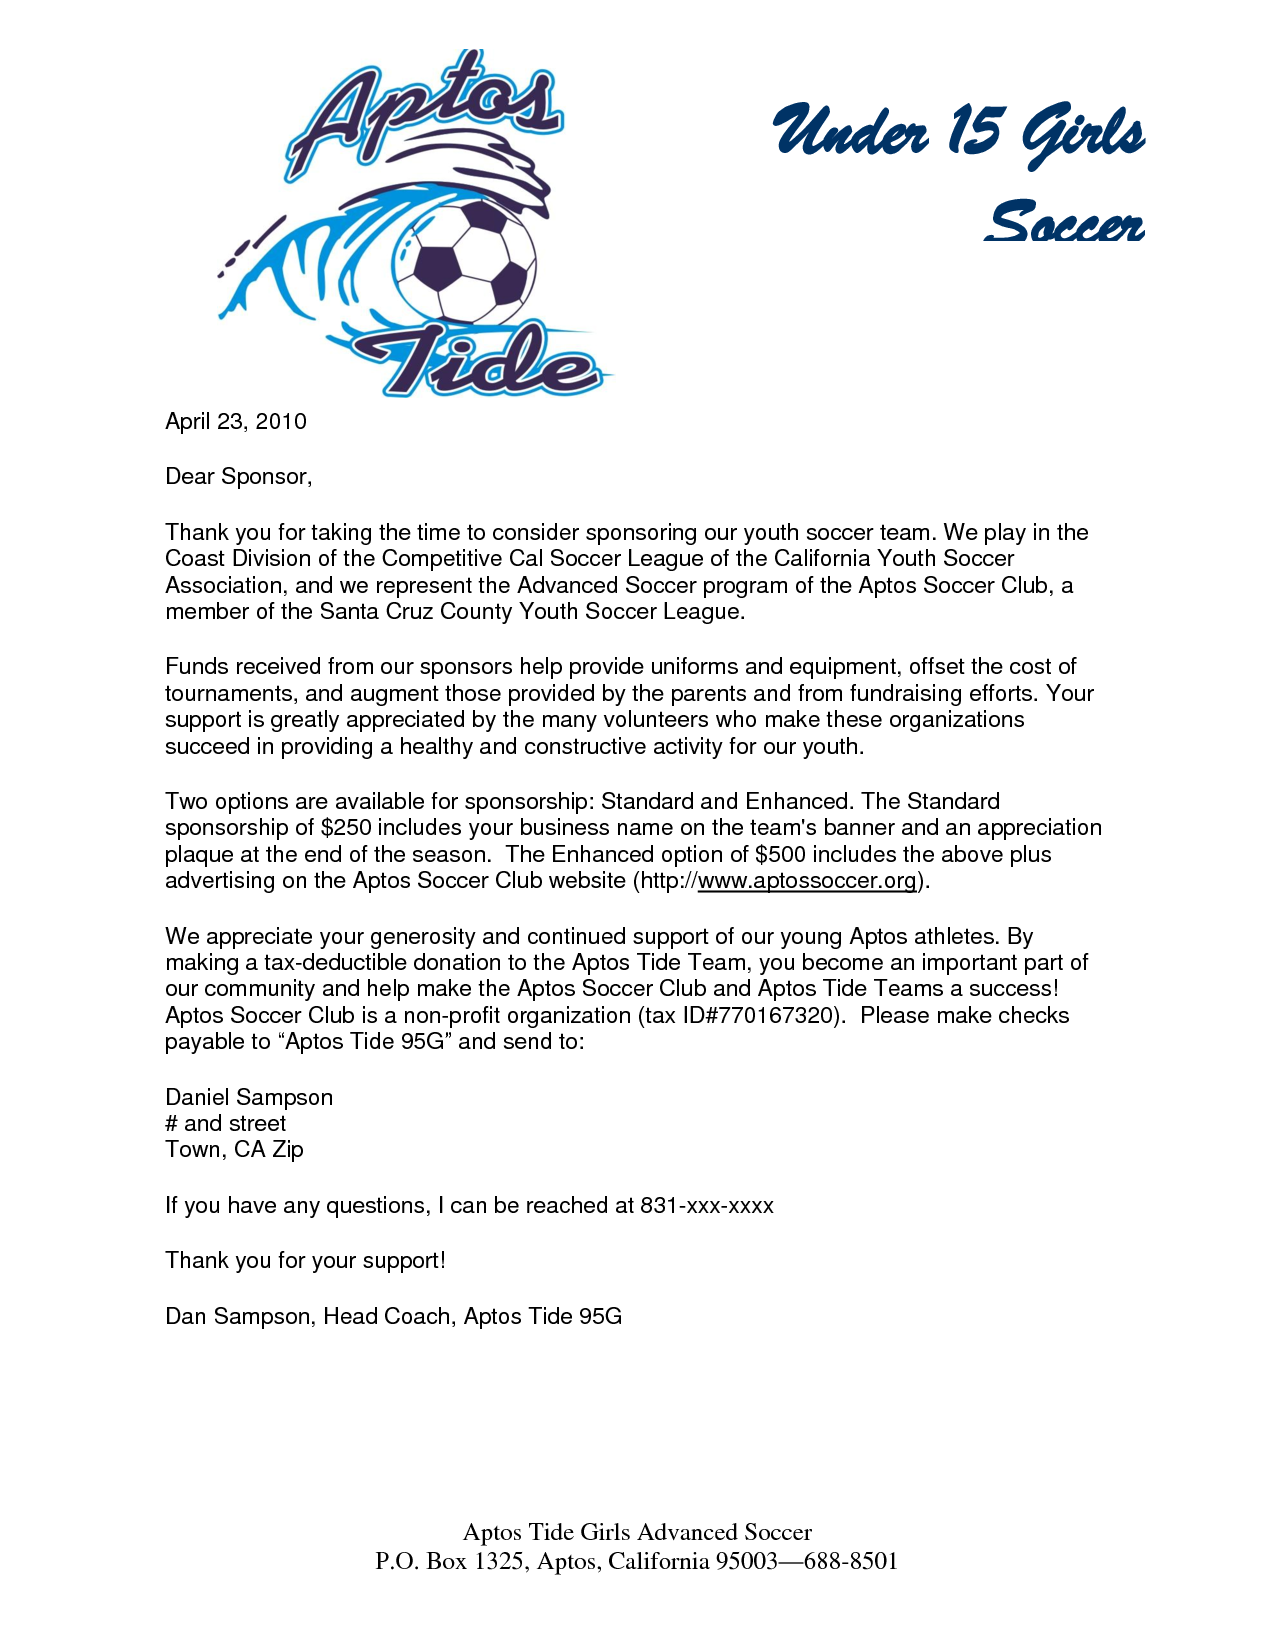 Parent Thank You Letter From Youth Athletes Sponsorship